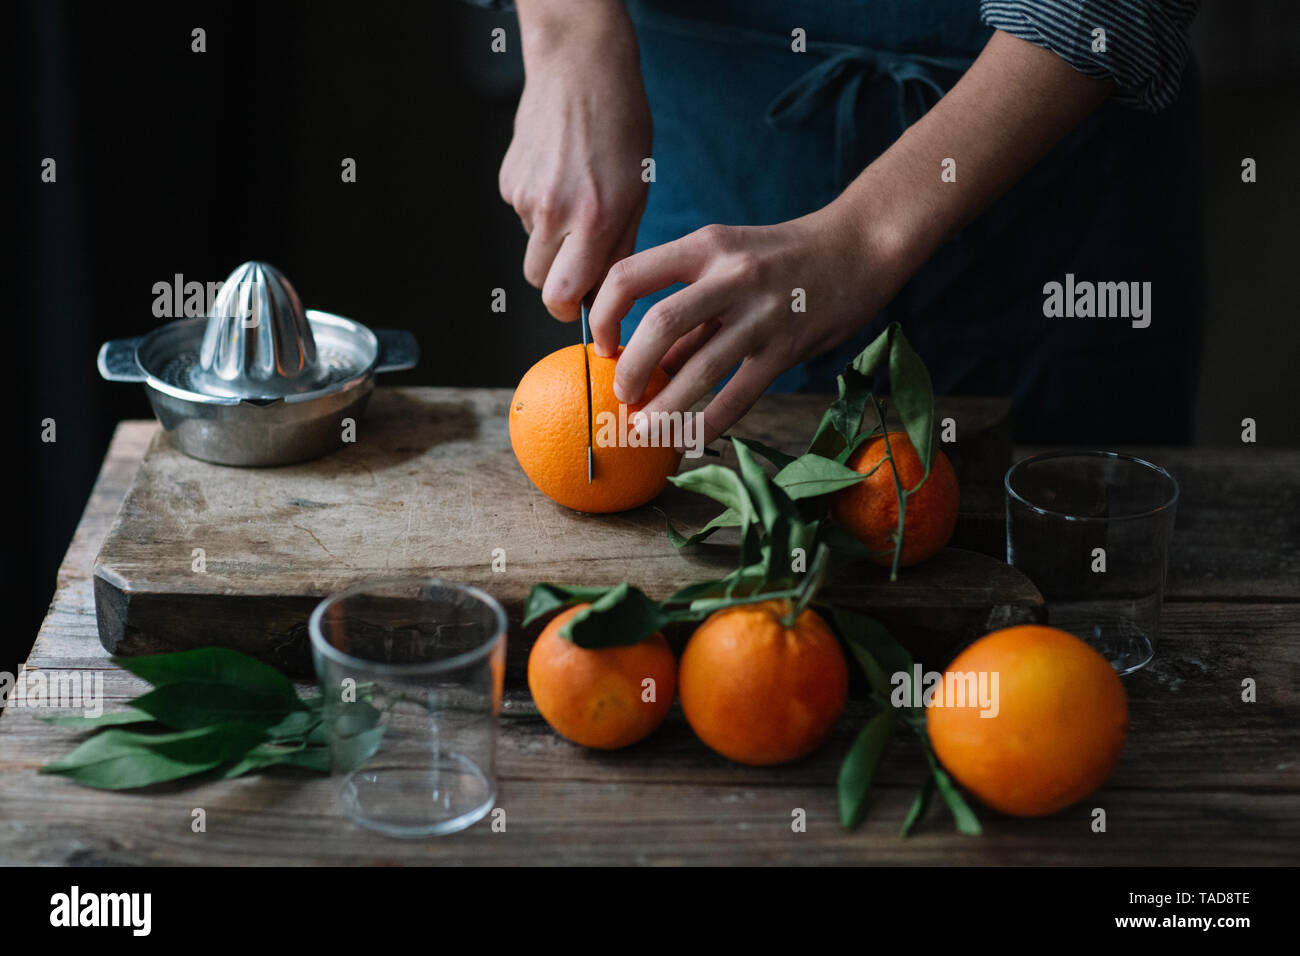 Young man's hands cutting oranges - Stock Image